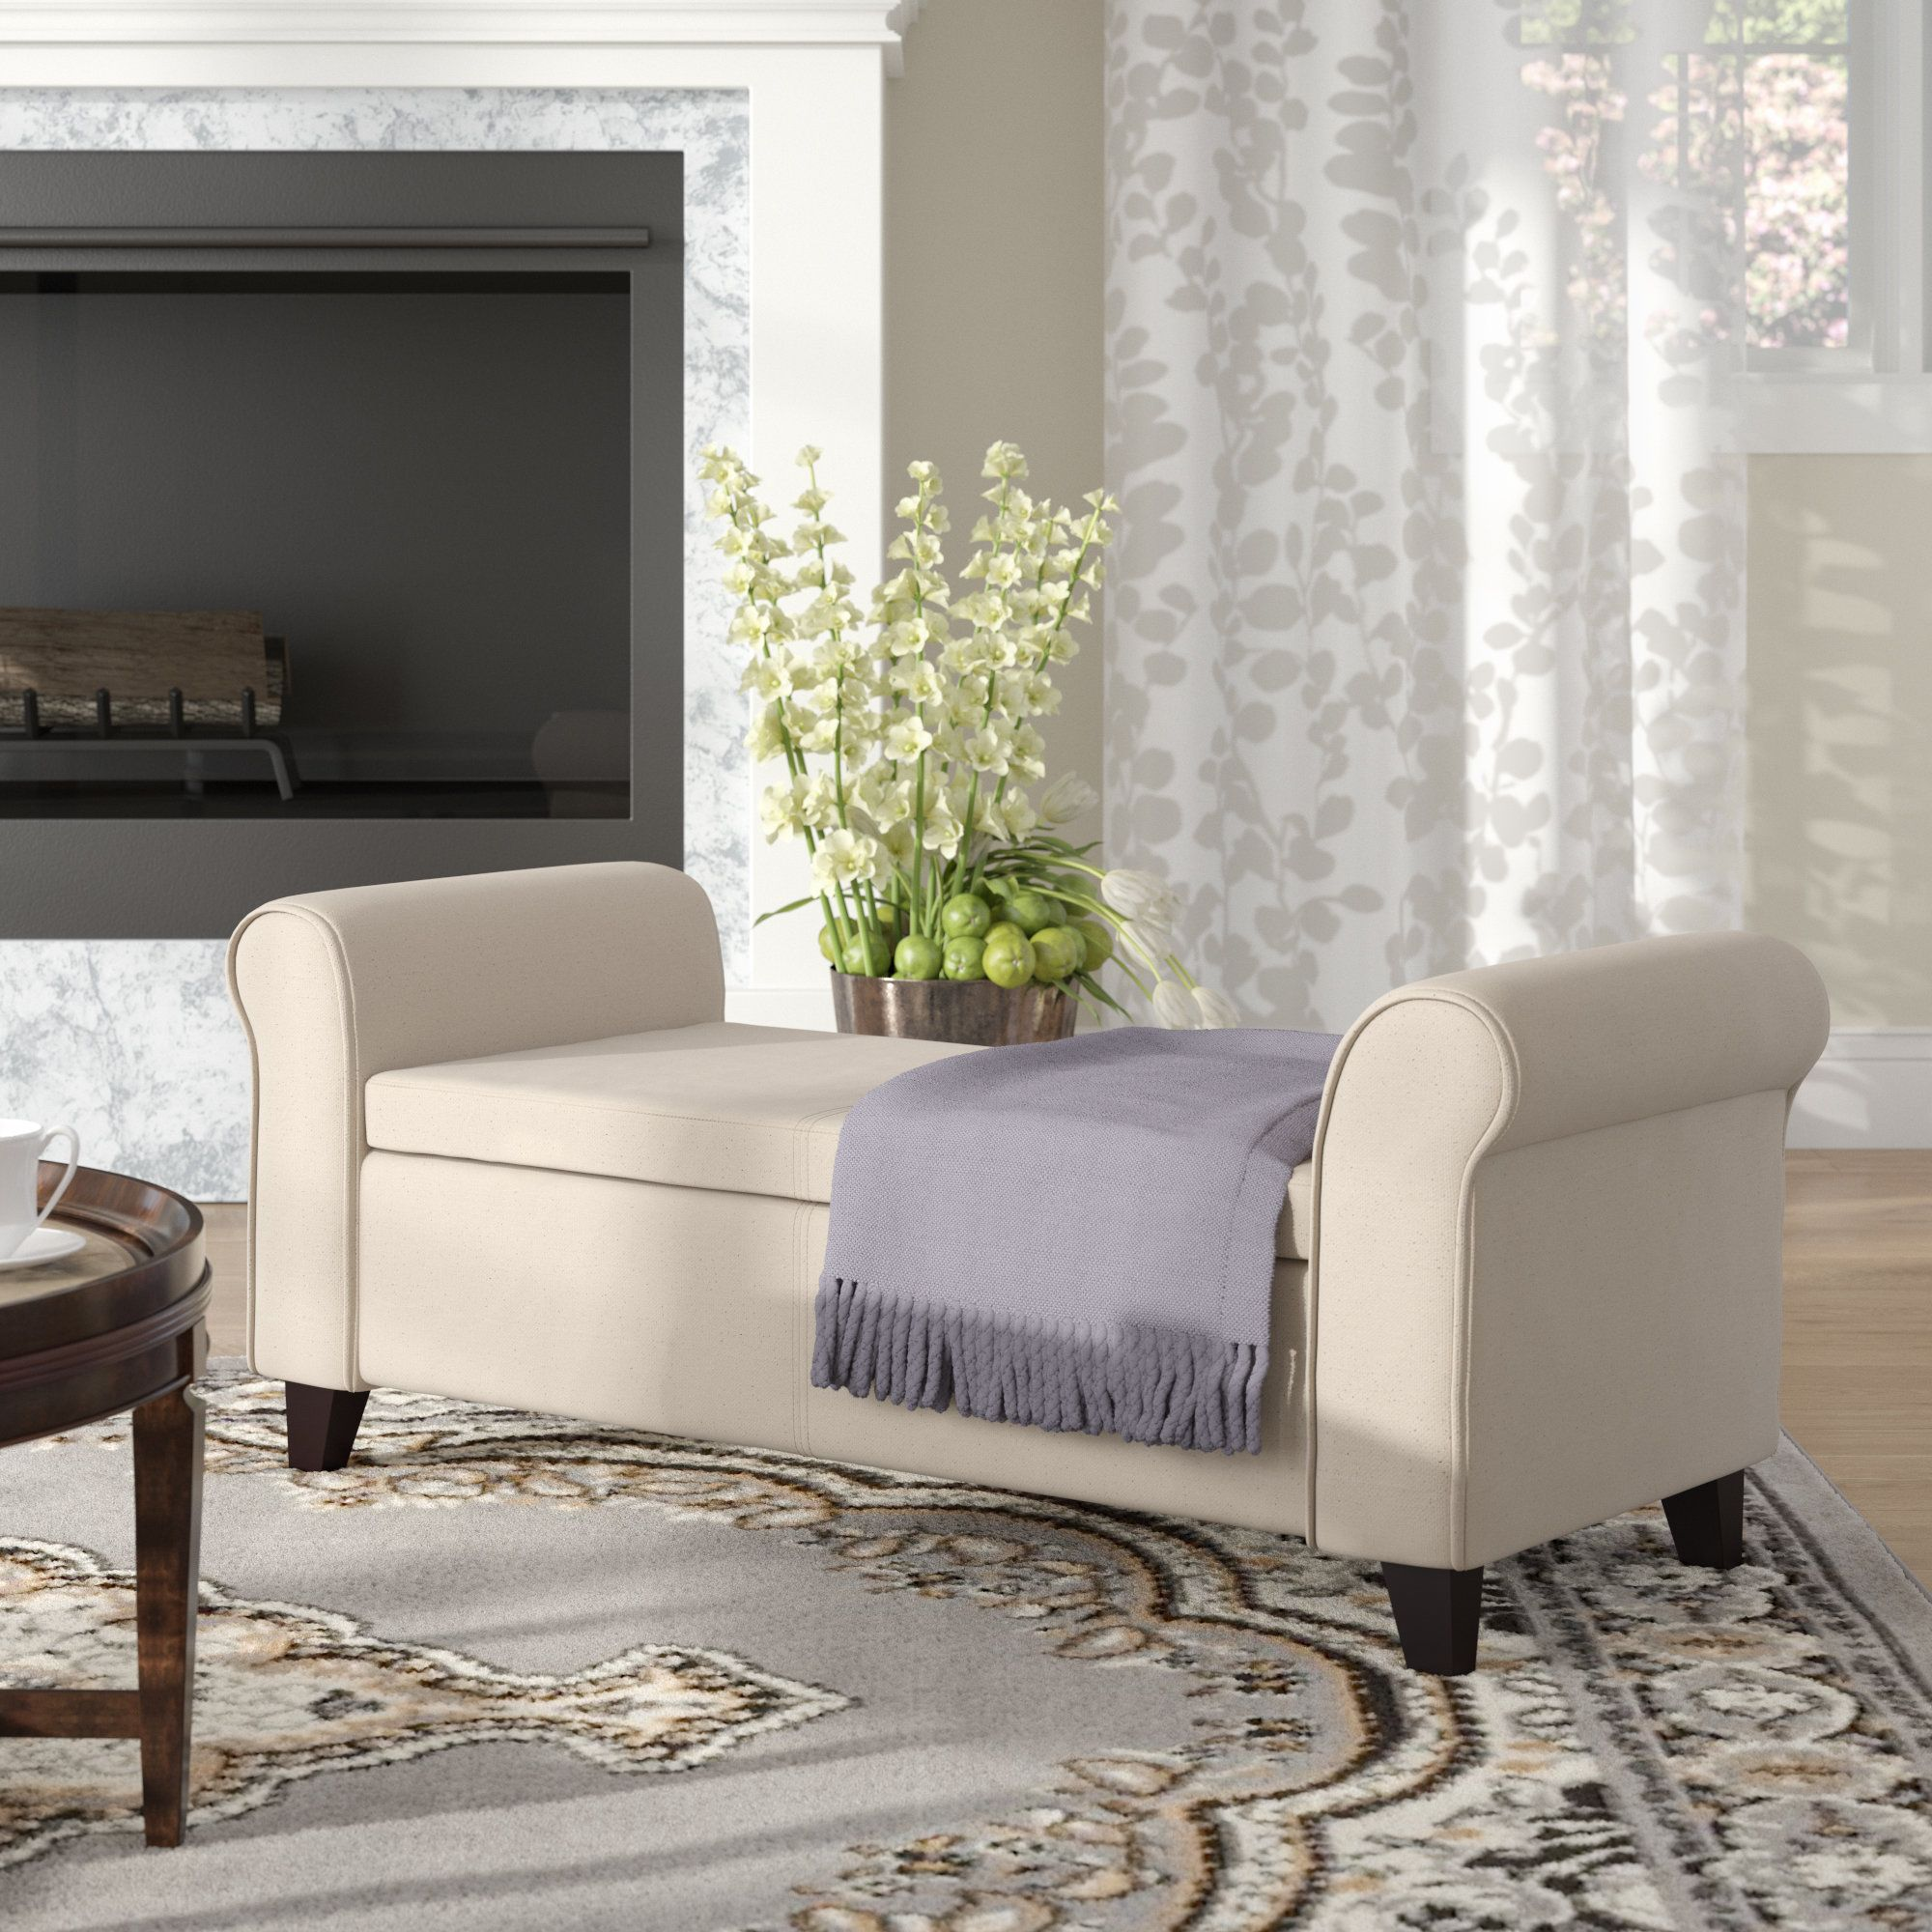 Metzger Convertible Chaise Lounge in 2020 Diy storage